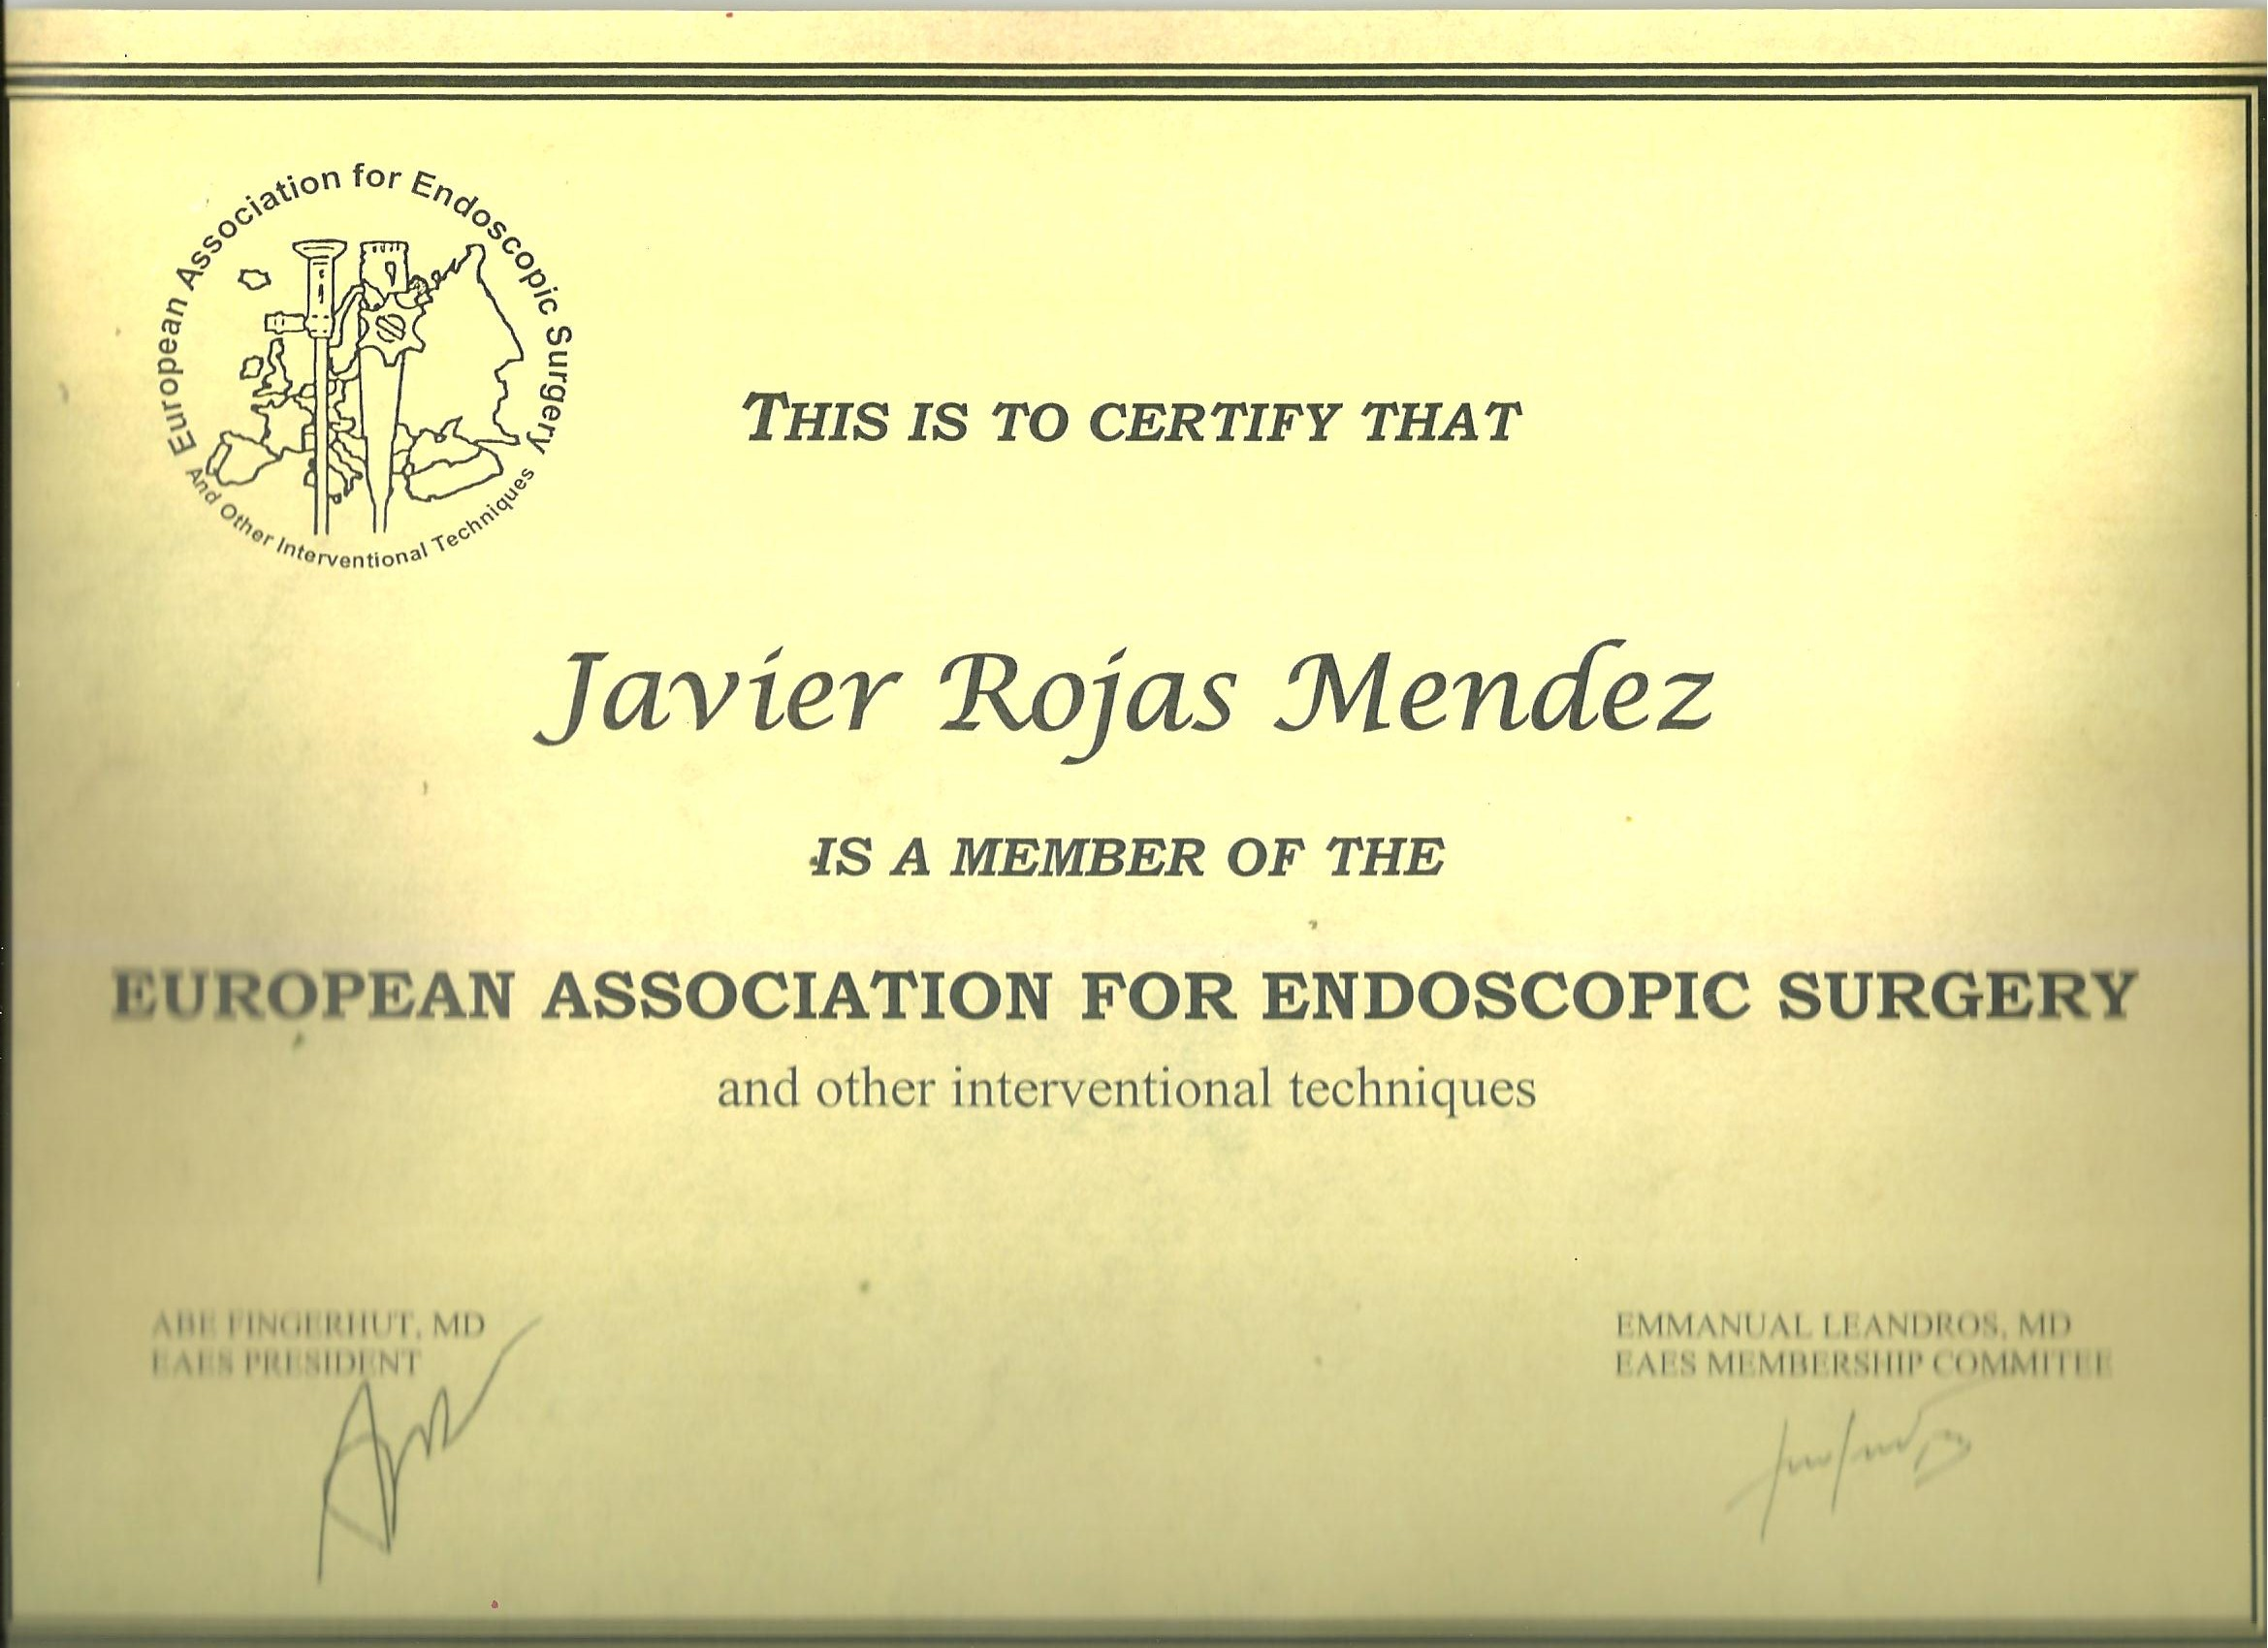 European Association Endoscopic Surgery